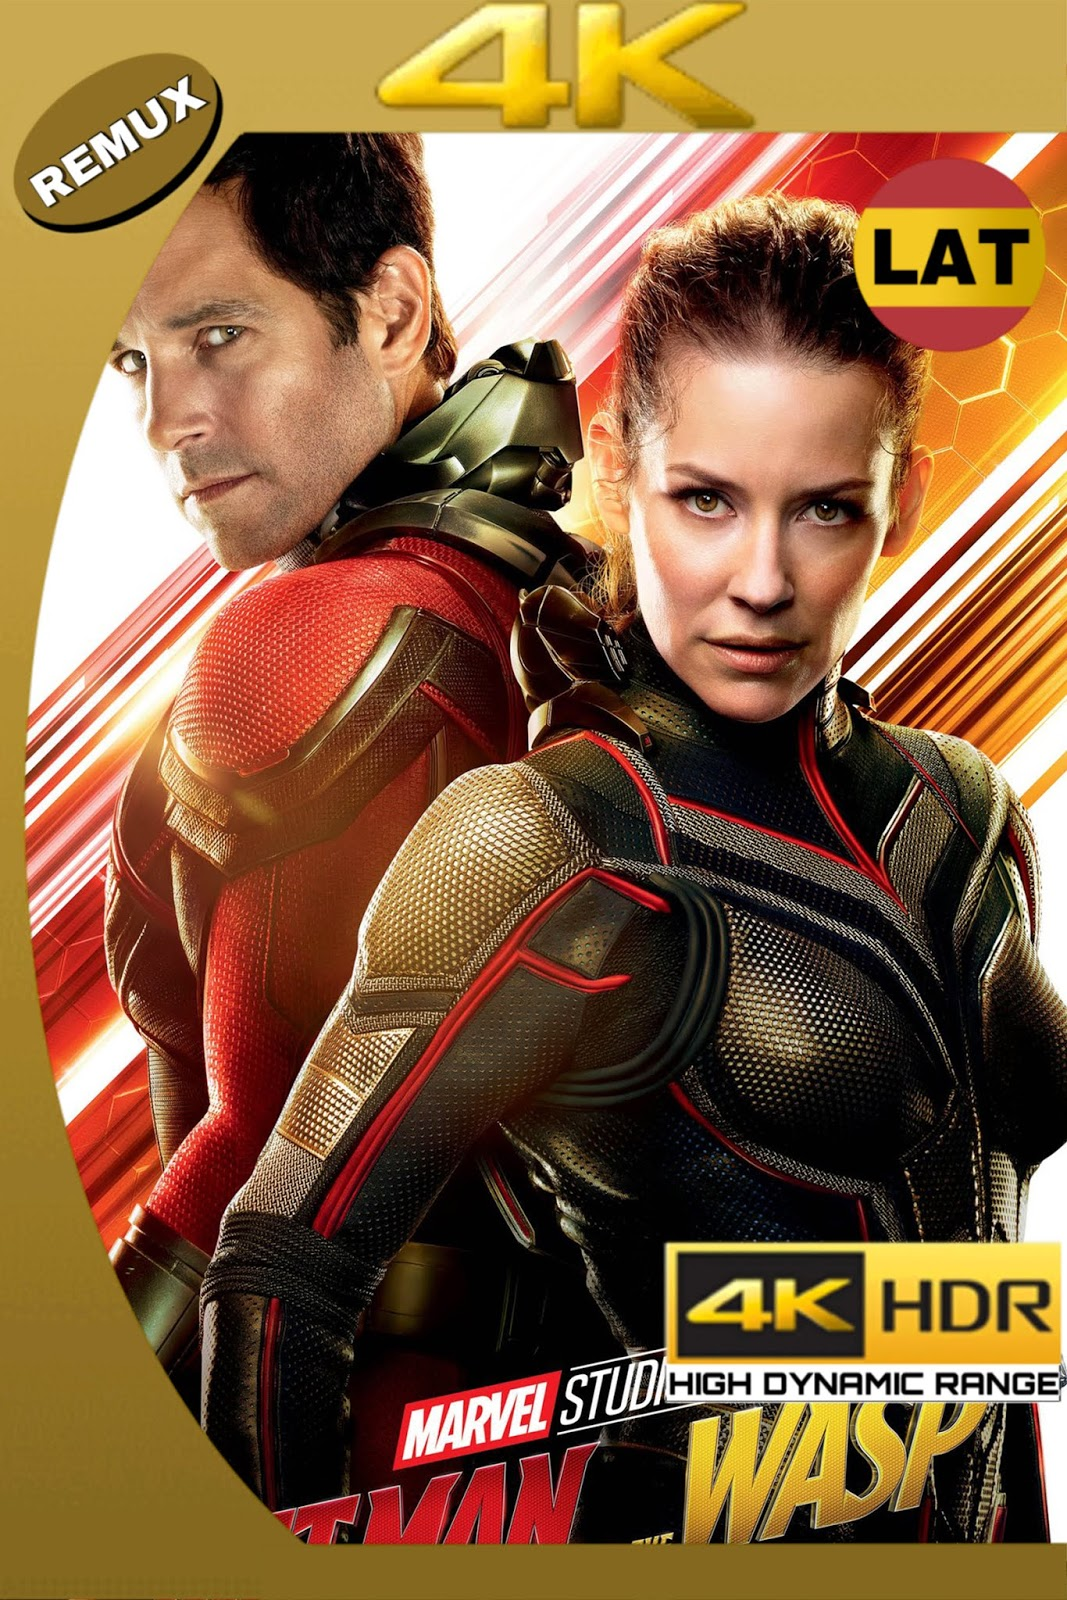 ANT-MAN AND THE WASP 2018 LAT-ING ULTRA HD 4K HDR BDREMUX 2160P 48GB.mkv